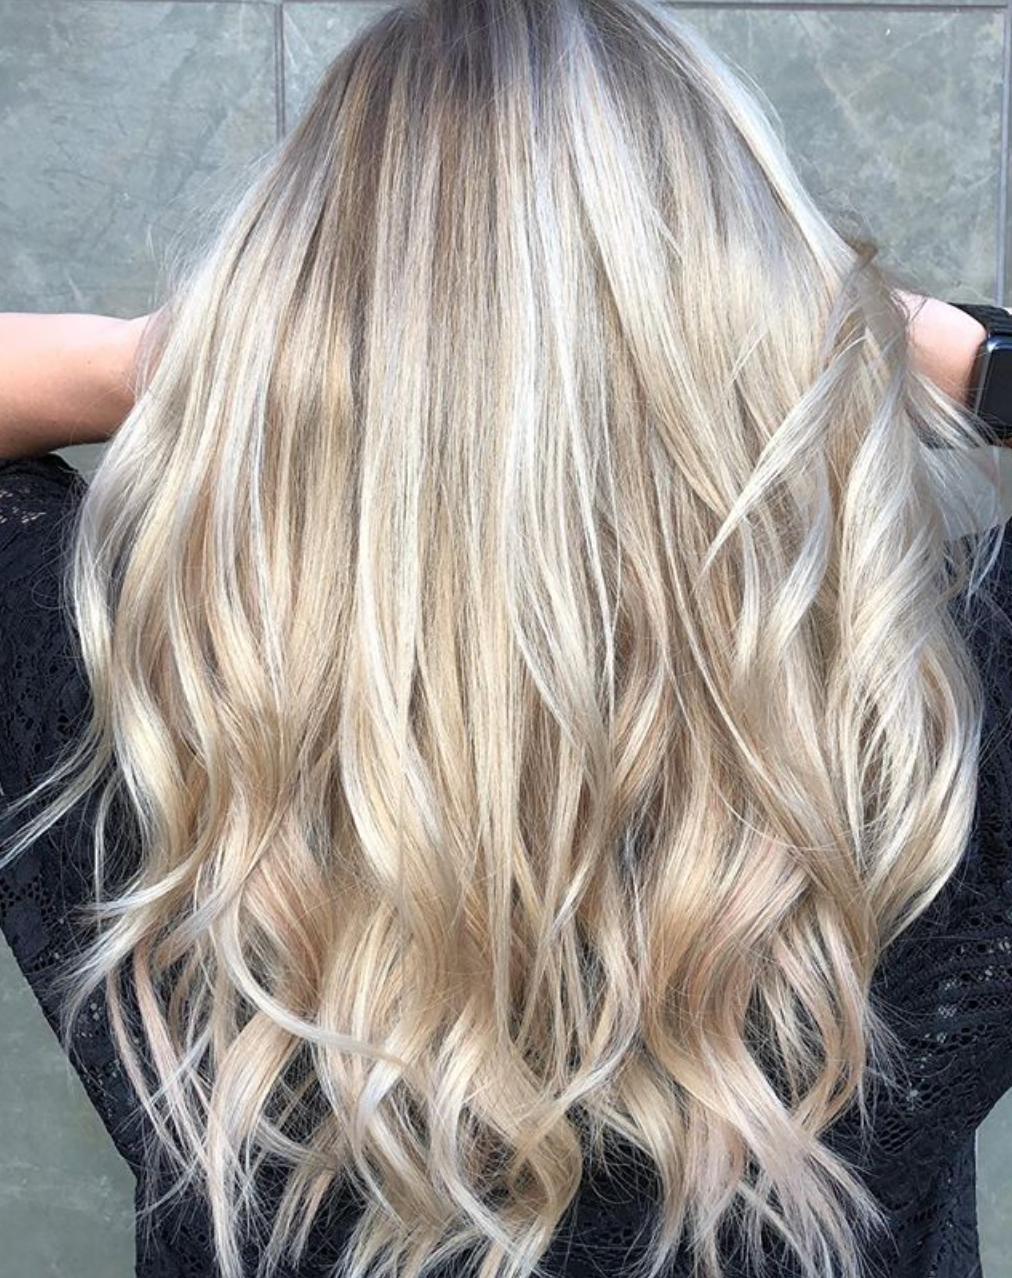 Dirty Blonde Highlights Clip In Hair Extensions Glam